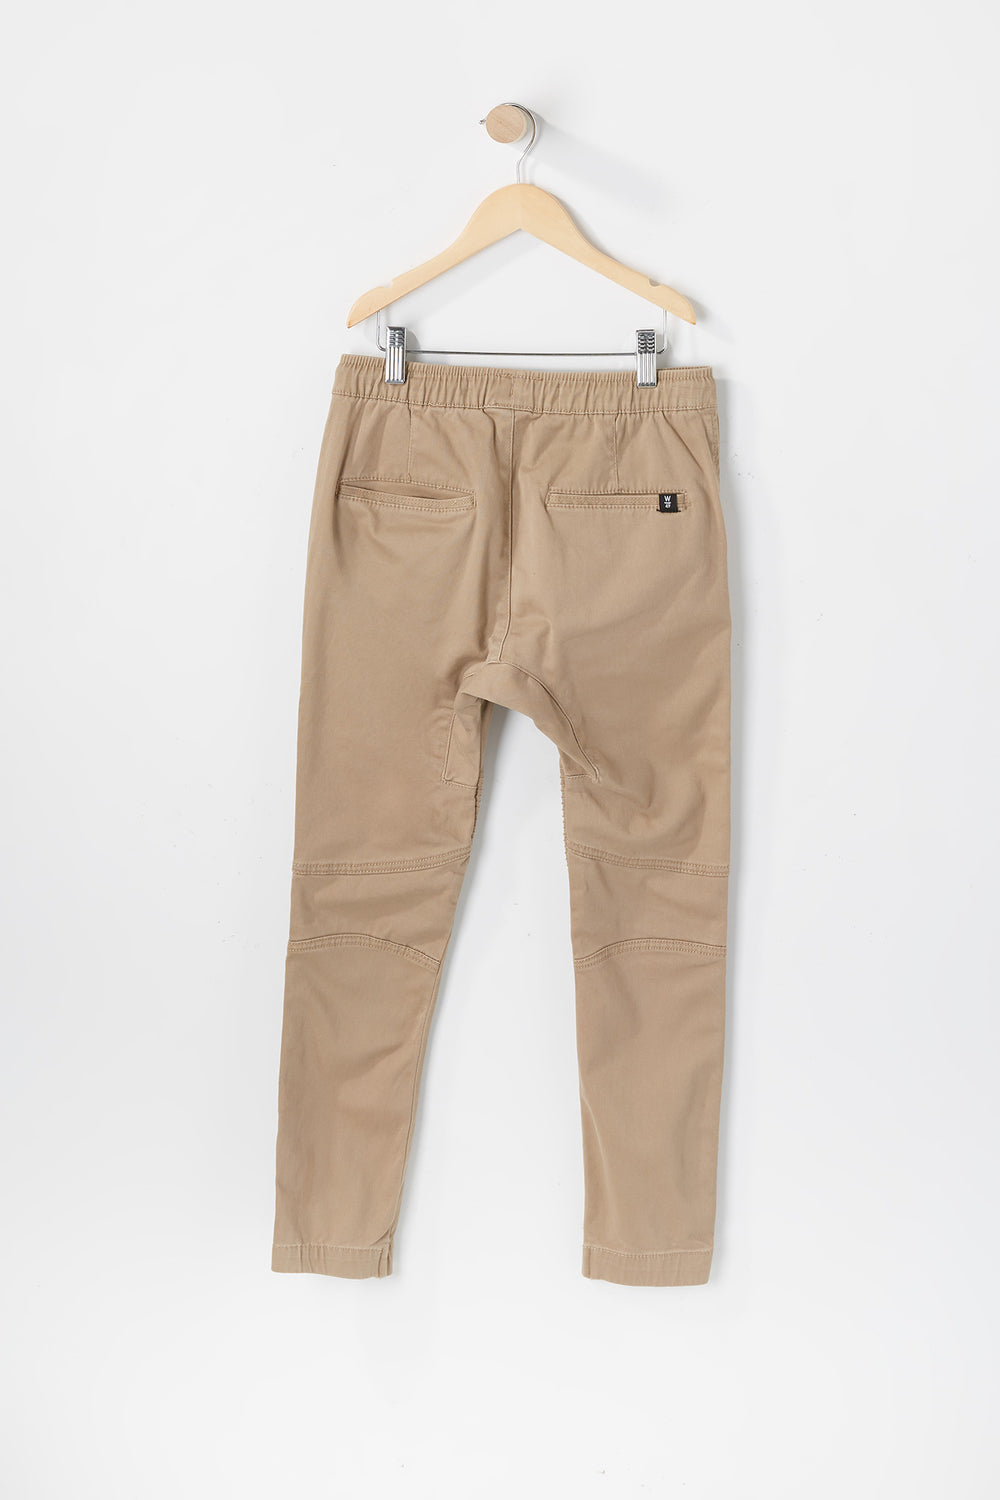 West49 Youth Solid Twill Moto Jogger Sand